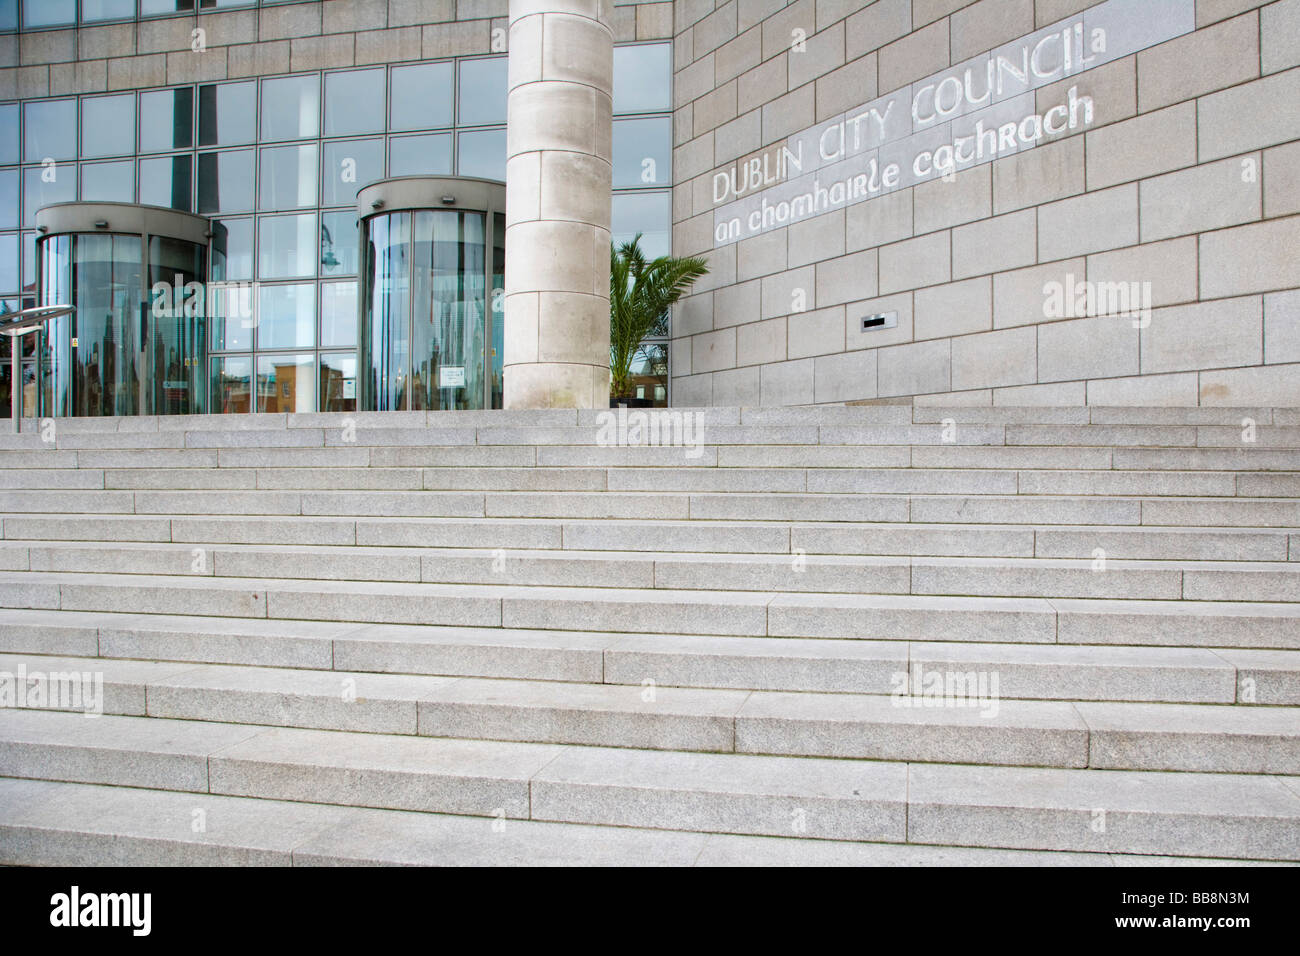 The Civic Offices of Dublin City Council, Wood Quay, Ireland - Stock Image